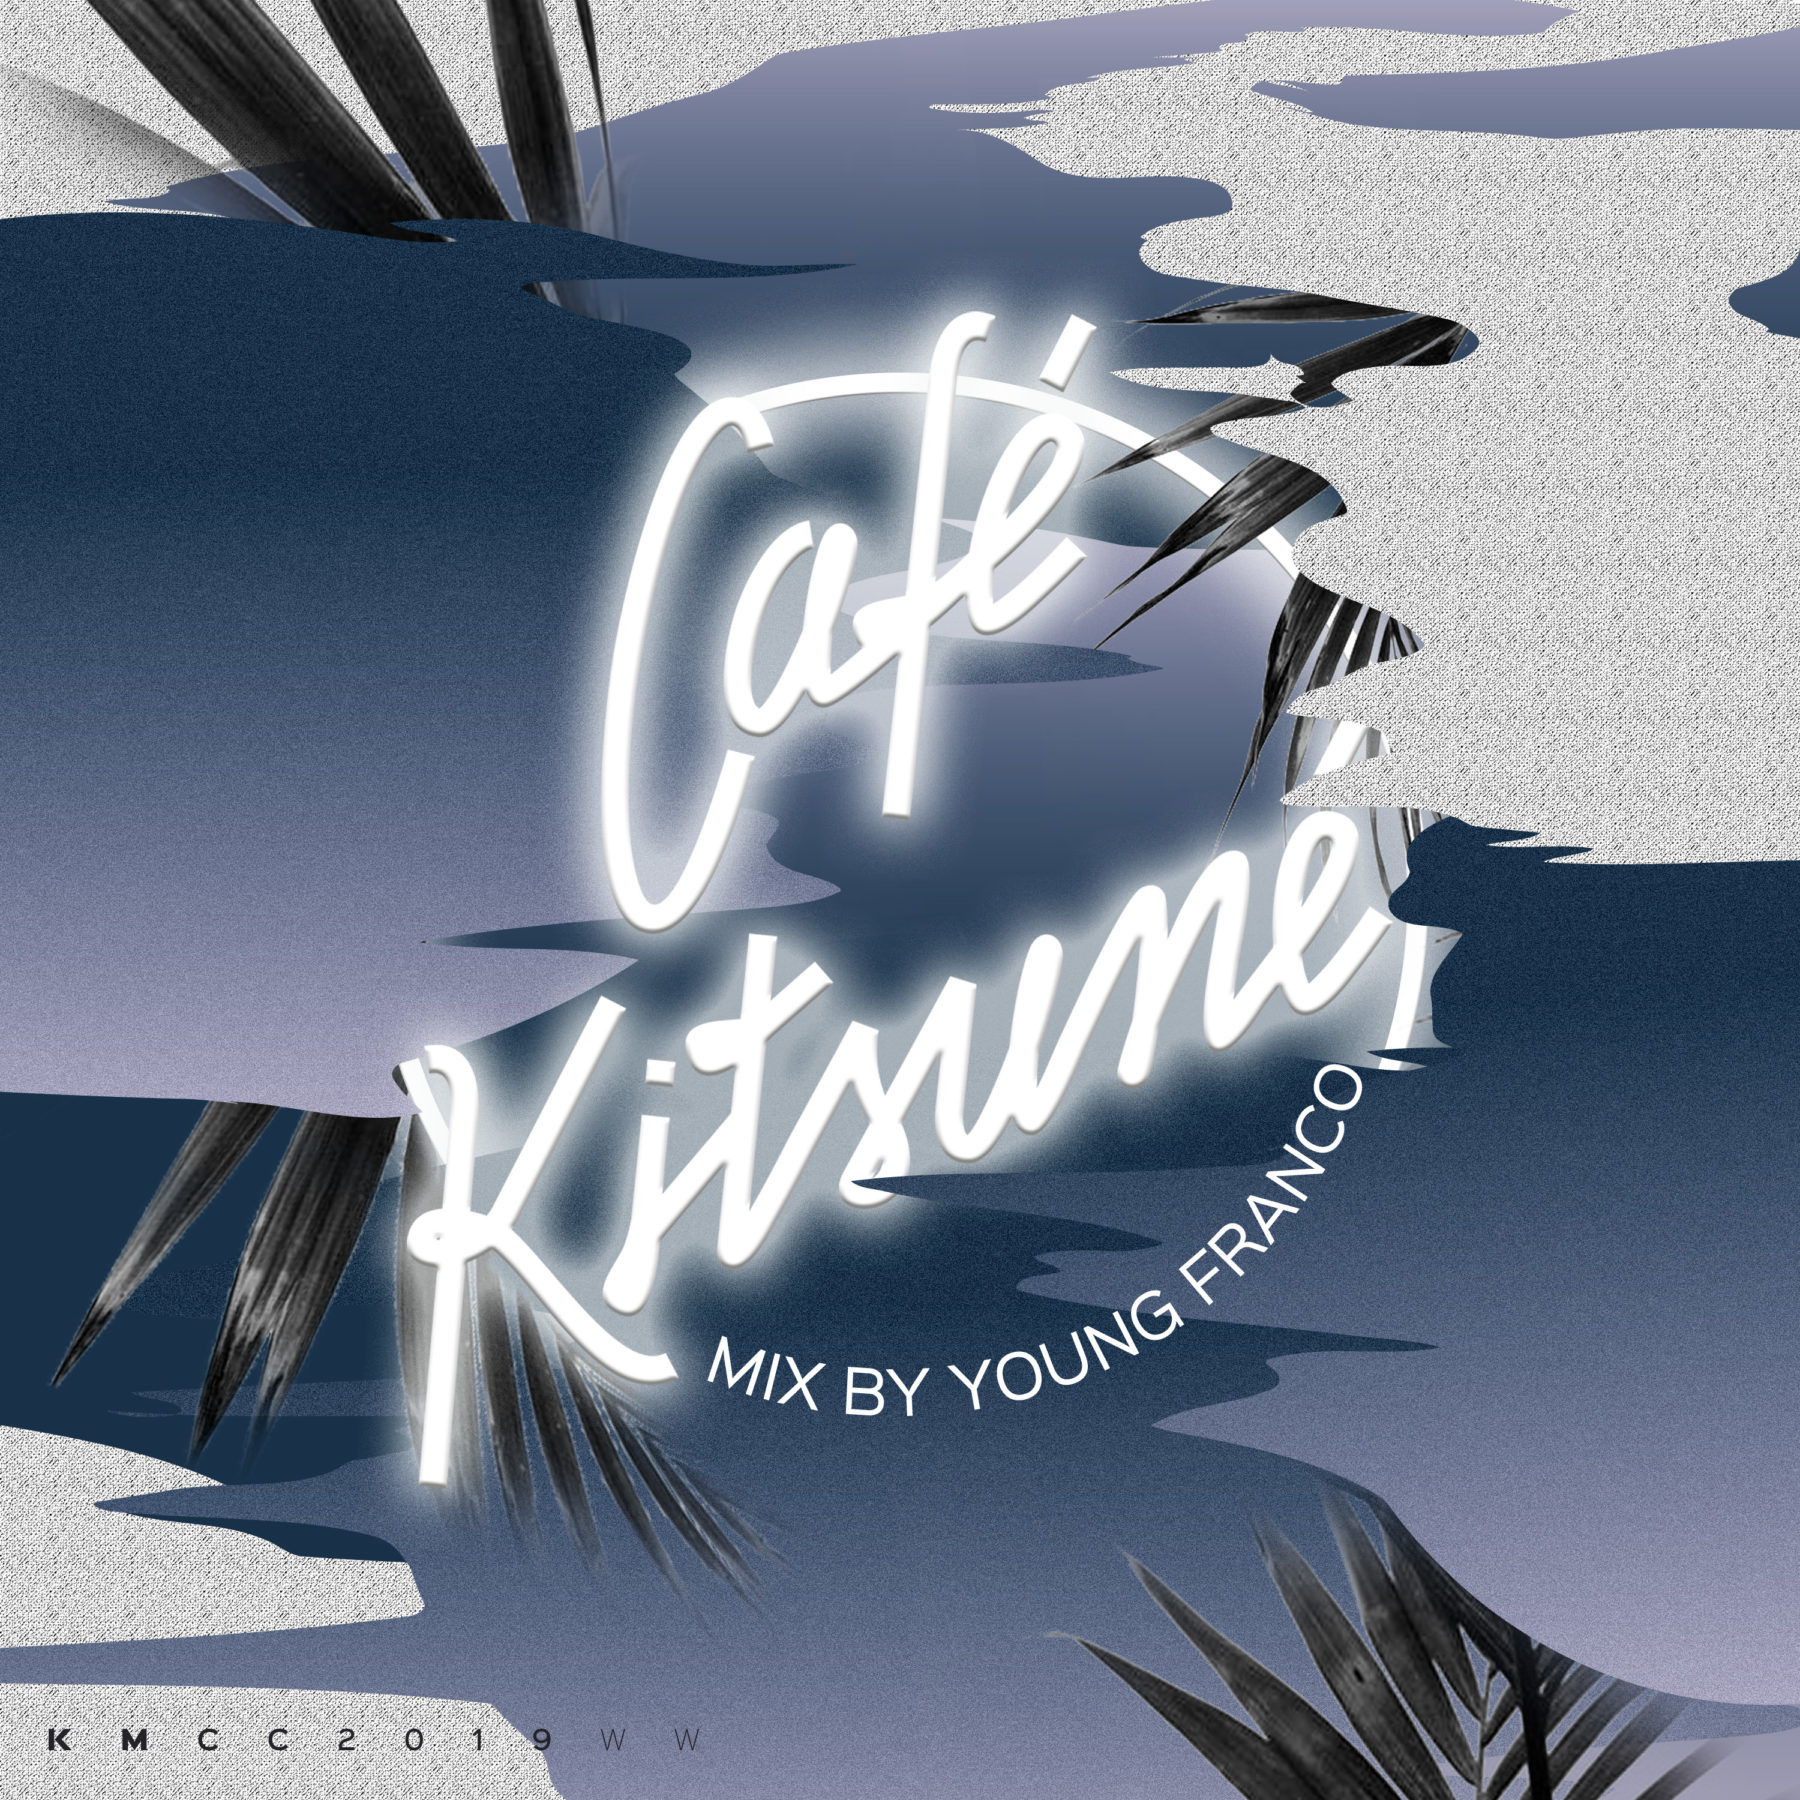 Café Kitsuné Mixed by Young Franco